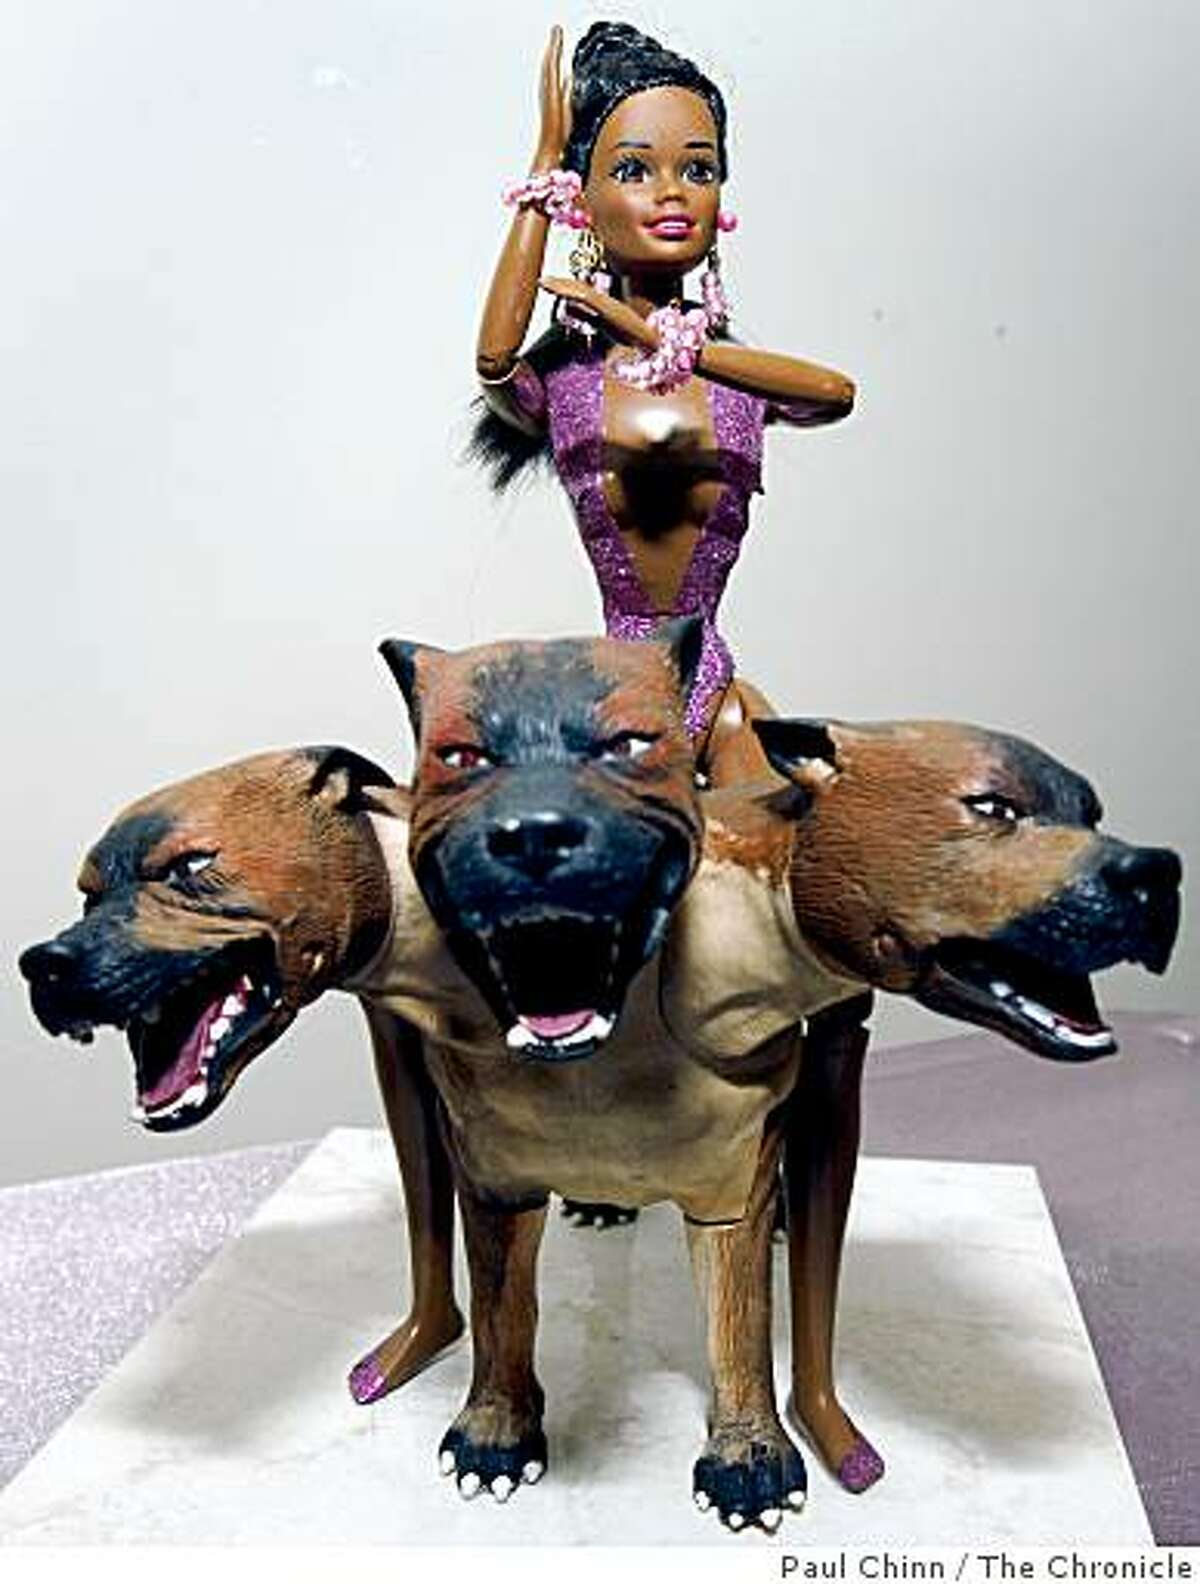 """""""Barbie on a Three-Headed Pit Bull"""" by artist LaVonne Sallee is displayed in the Altered Barbie art show at Gallery 94124 in San Francisco, Calif., on Wednesday, July 23, 2008. The show runs through August 17.Photo by Paul Chinn / The Chronicle"""